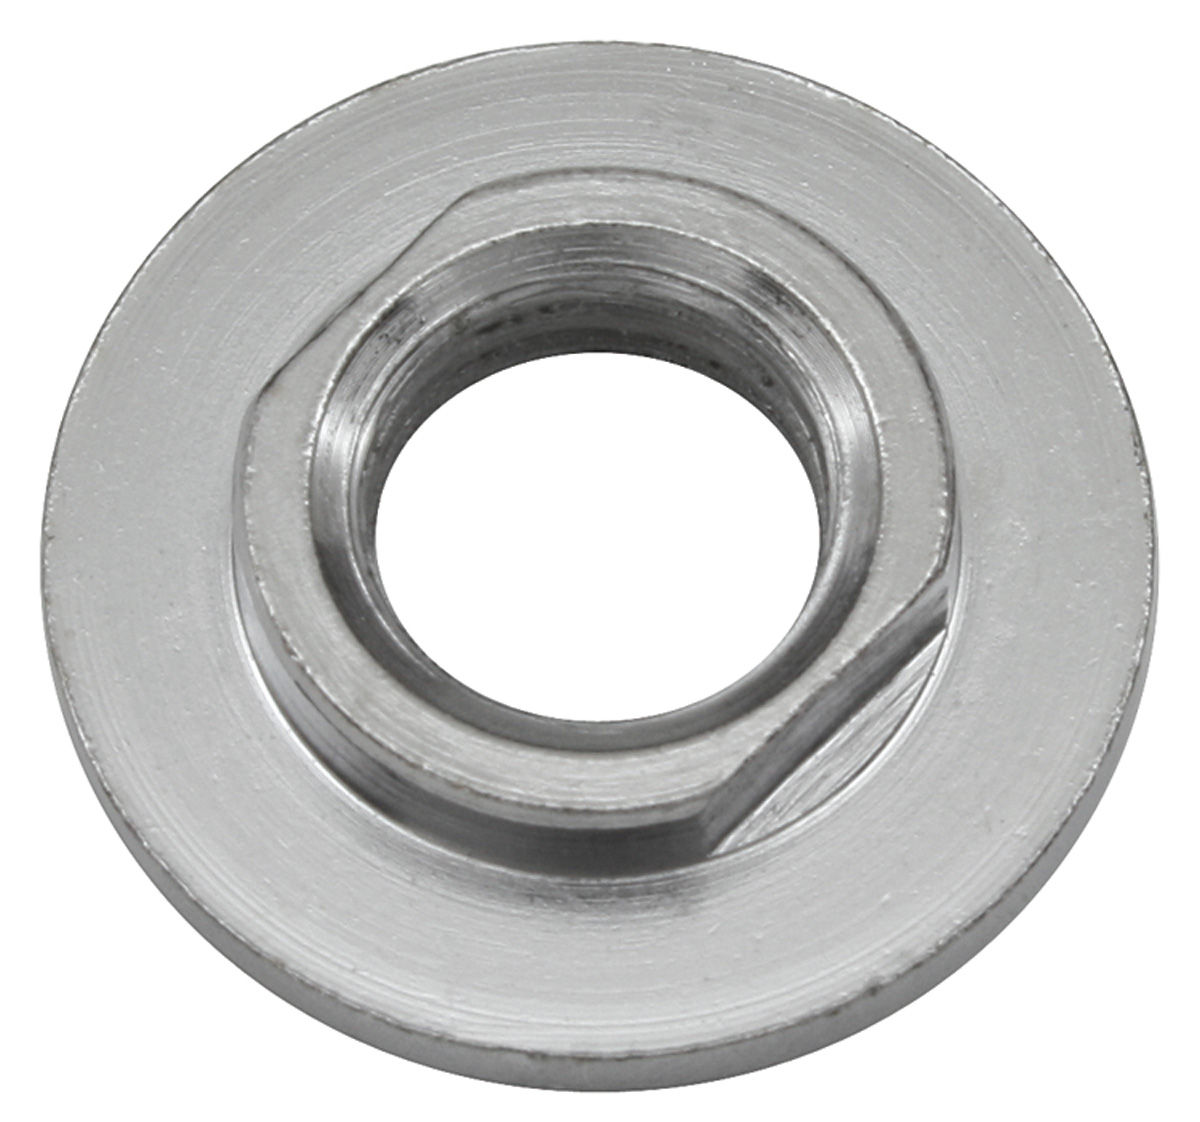 Retainer Nut, Vent Stud, 1966-67 A-Body